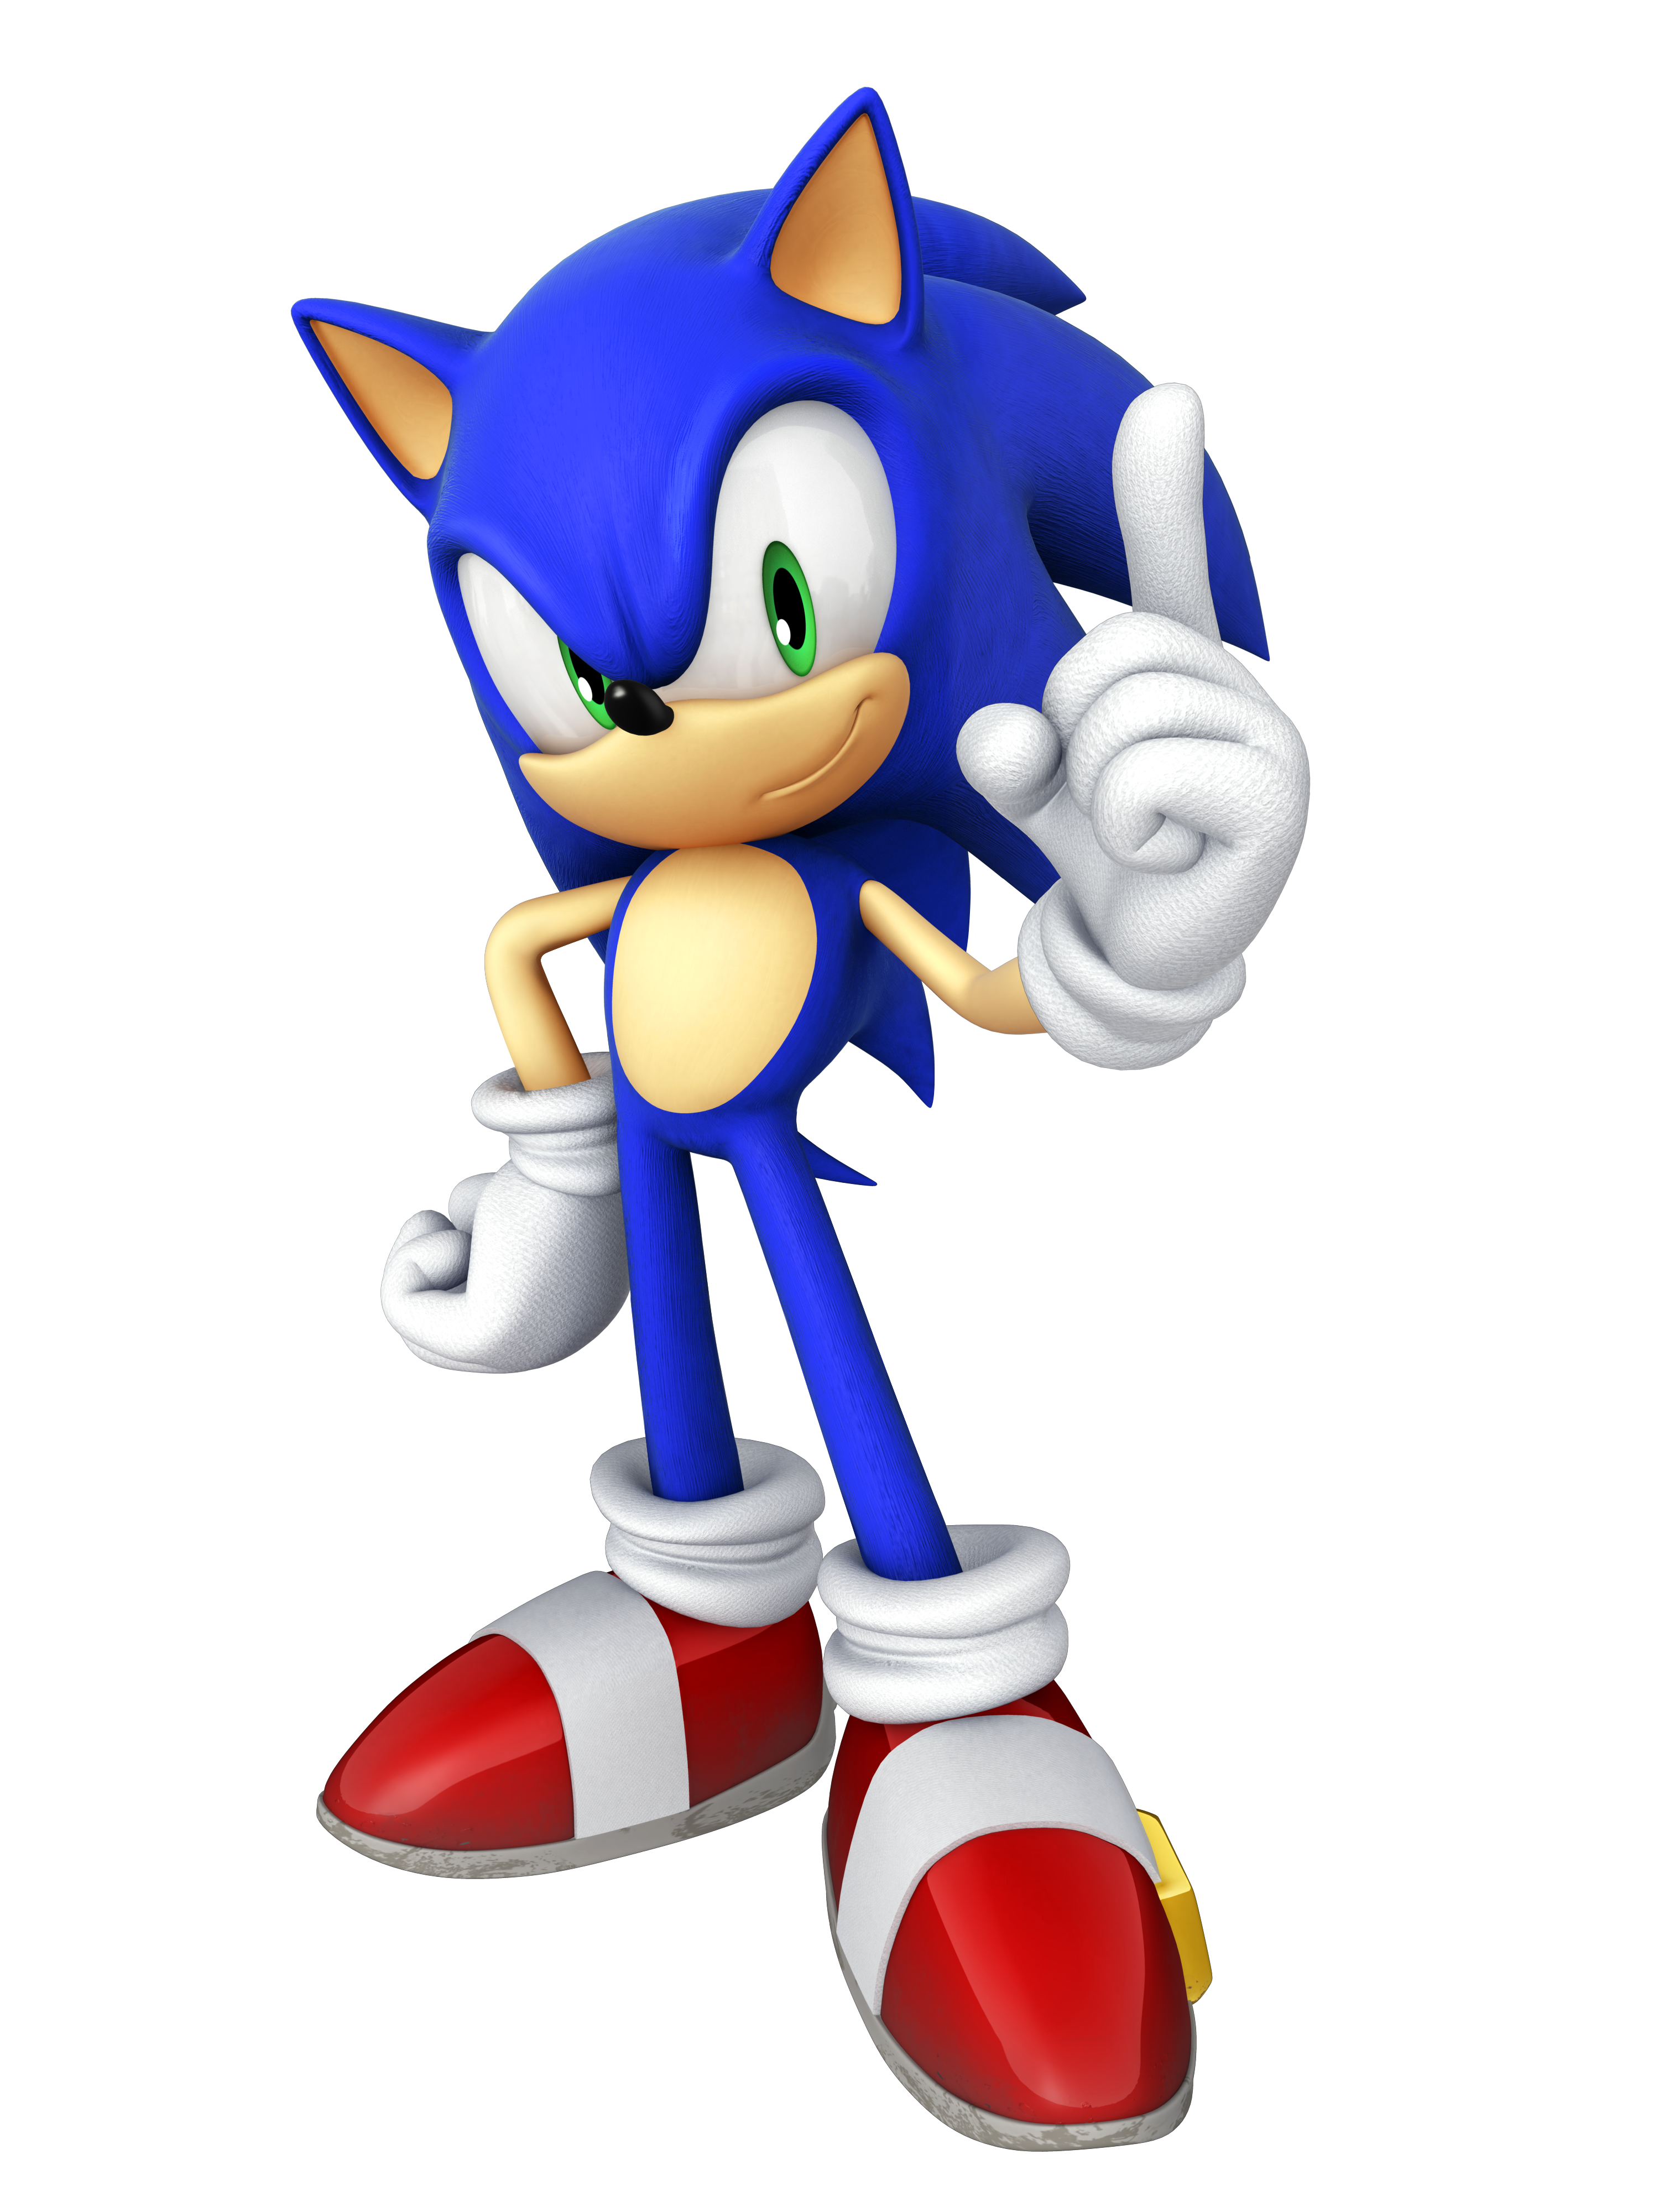 Sanic drawing realistic. Image sonic the hedgehog image library download